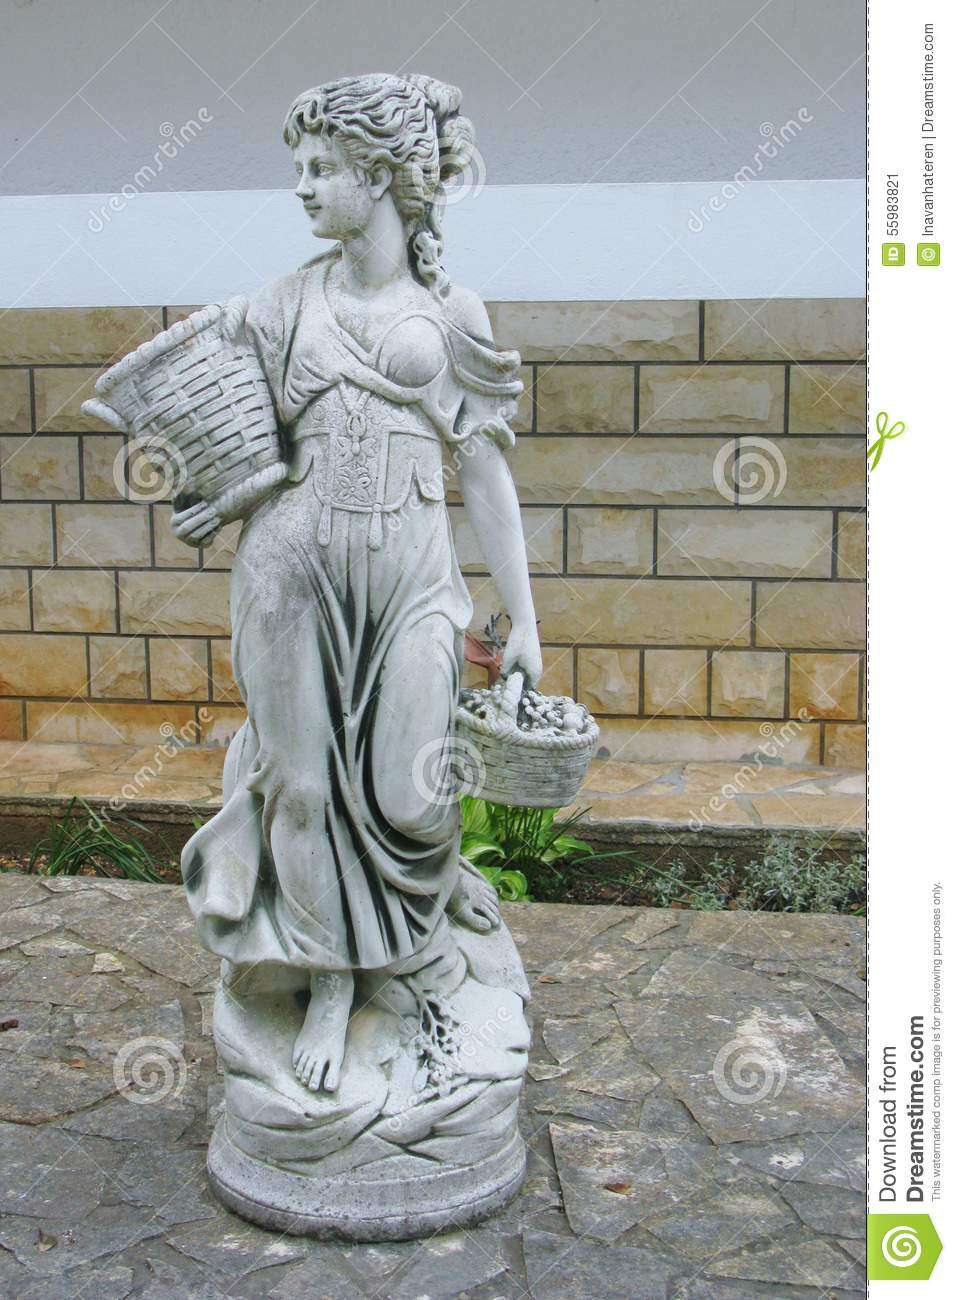 a statue of a lady in a garden stock image image 55983821. Black Bedroom Furniture Sets. Home Design Ideas